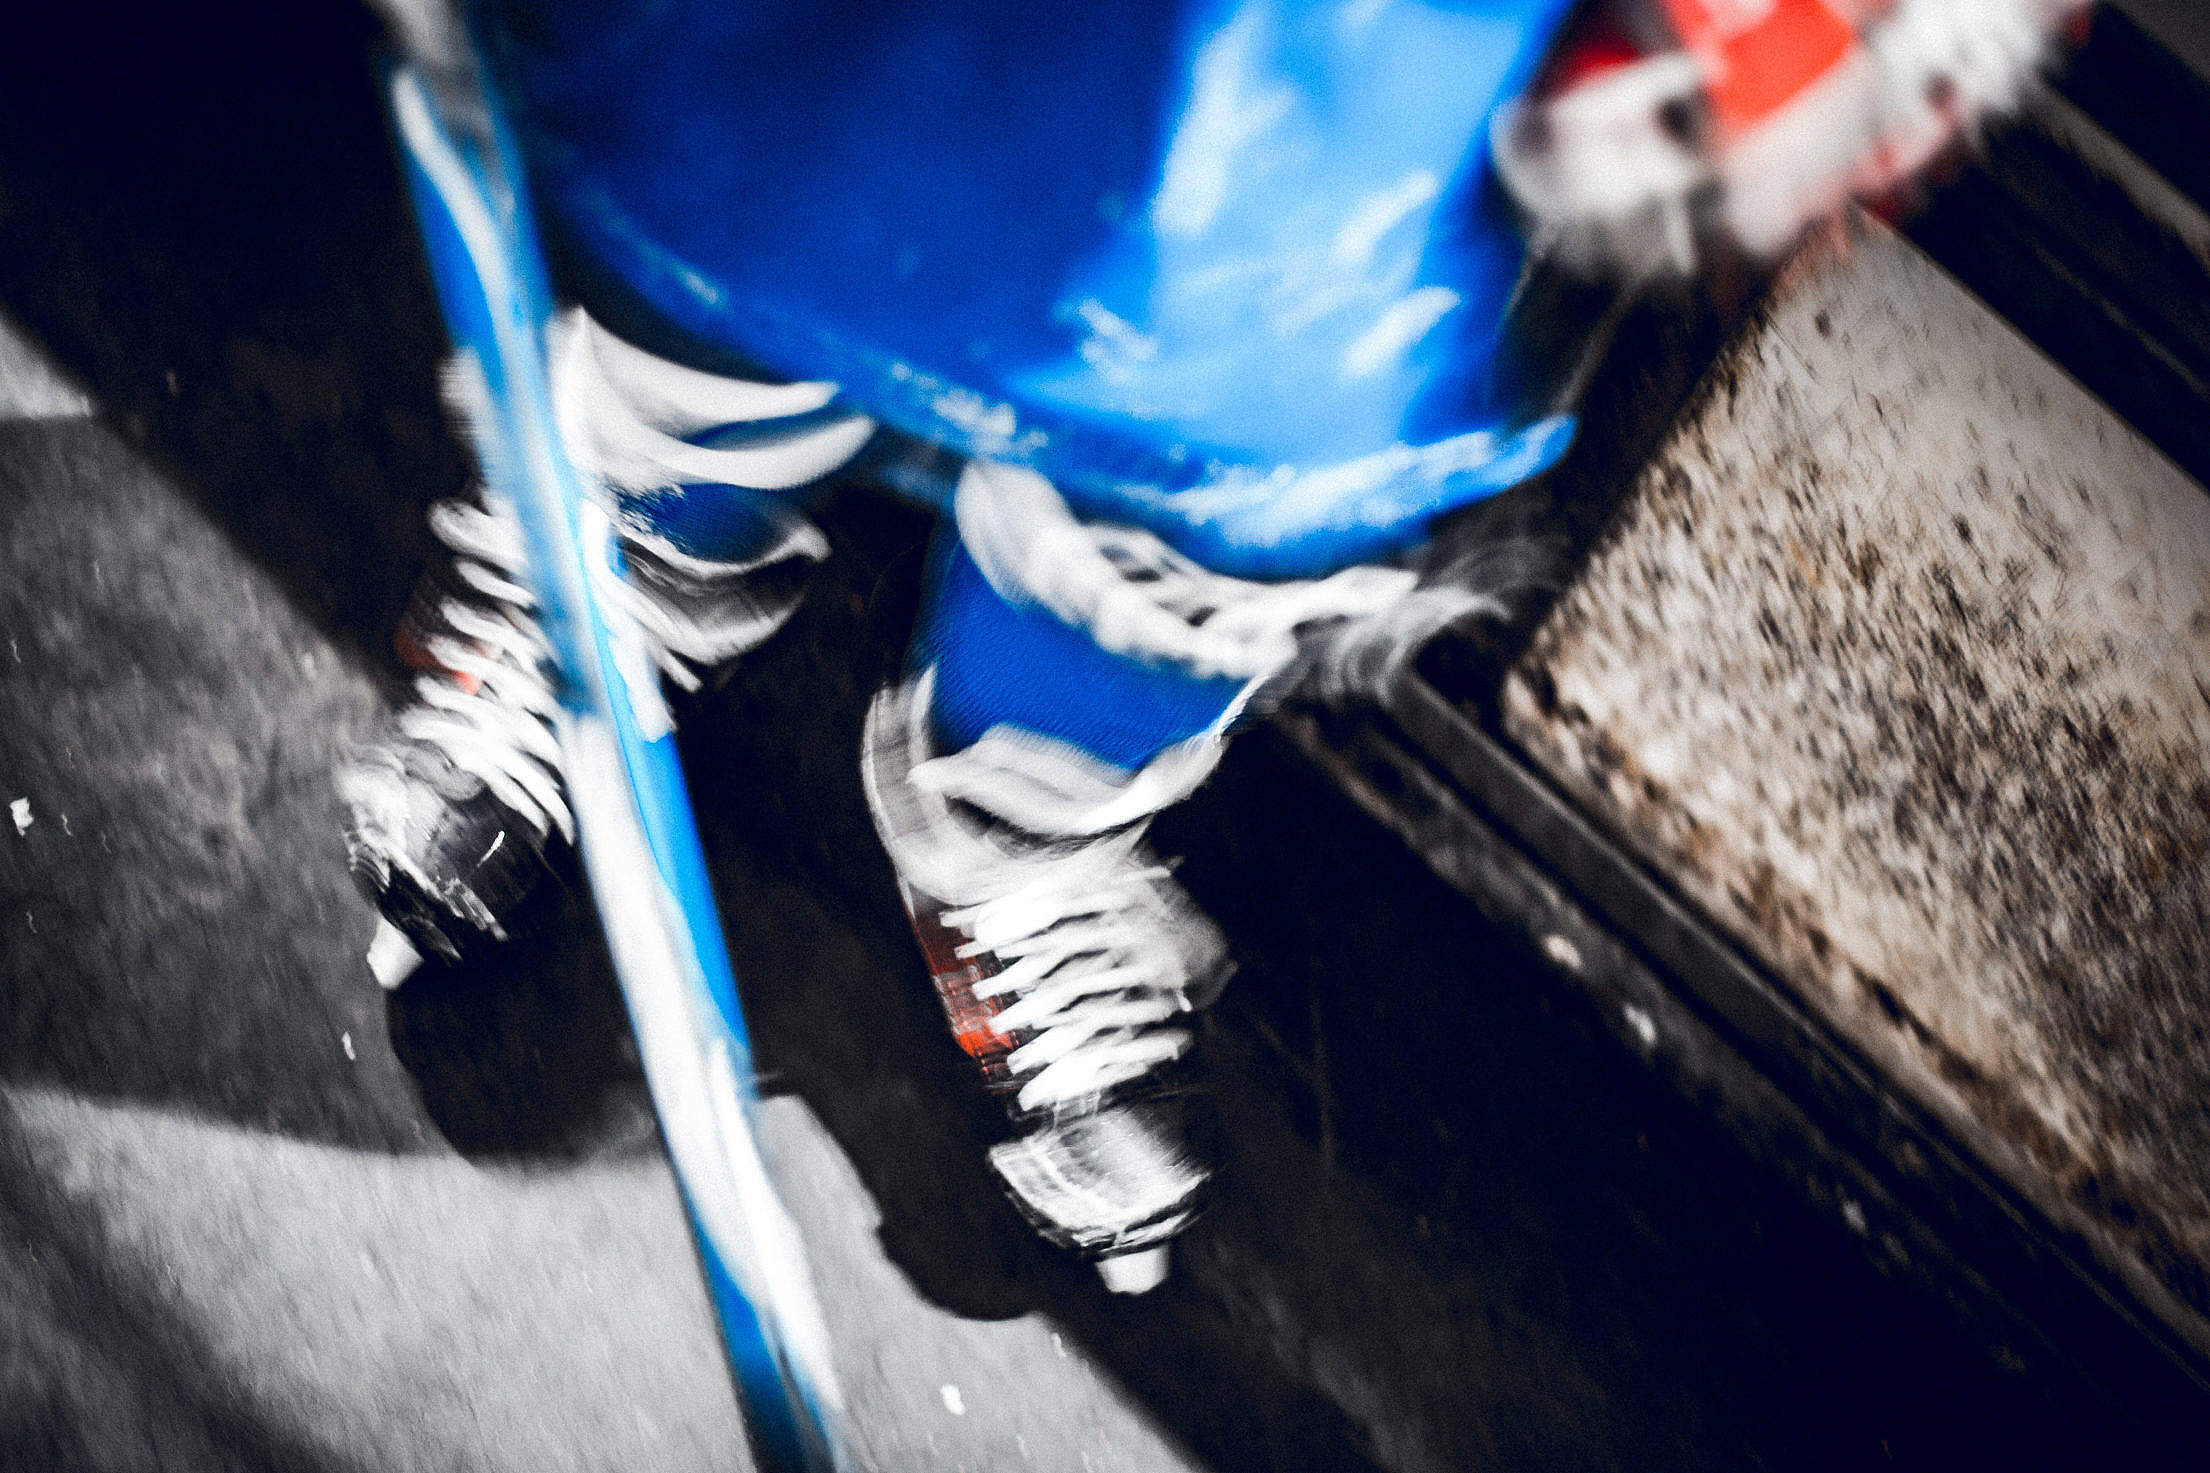 Download Hockey Player Practice Gear Free Stock Photo